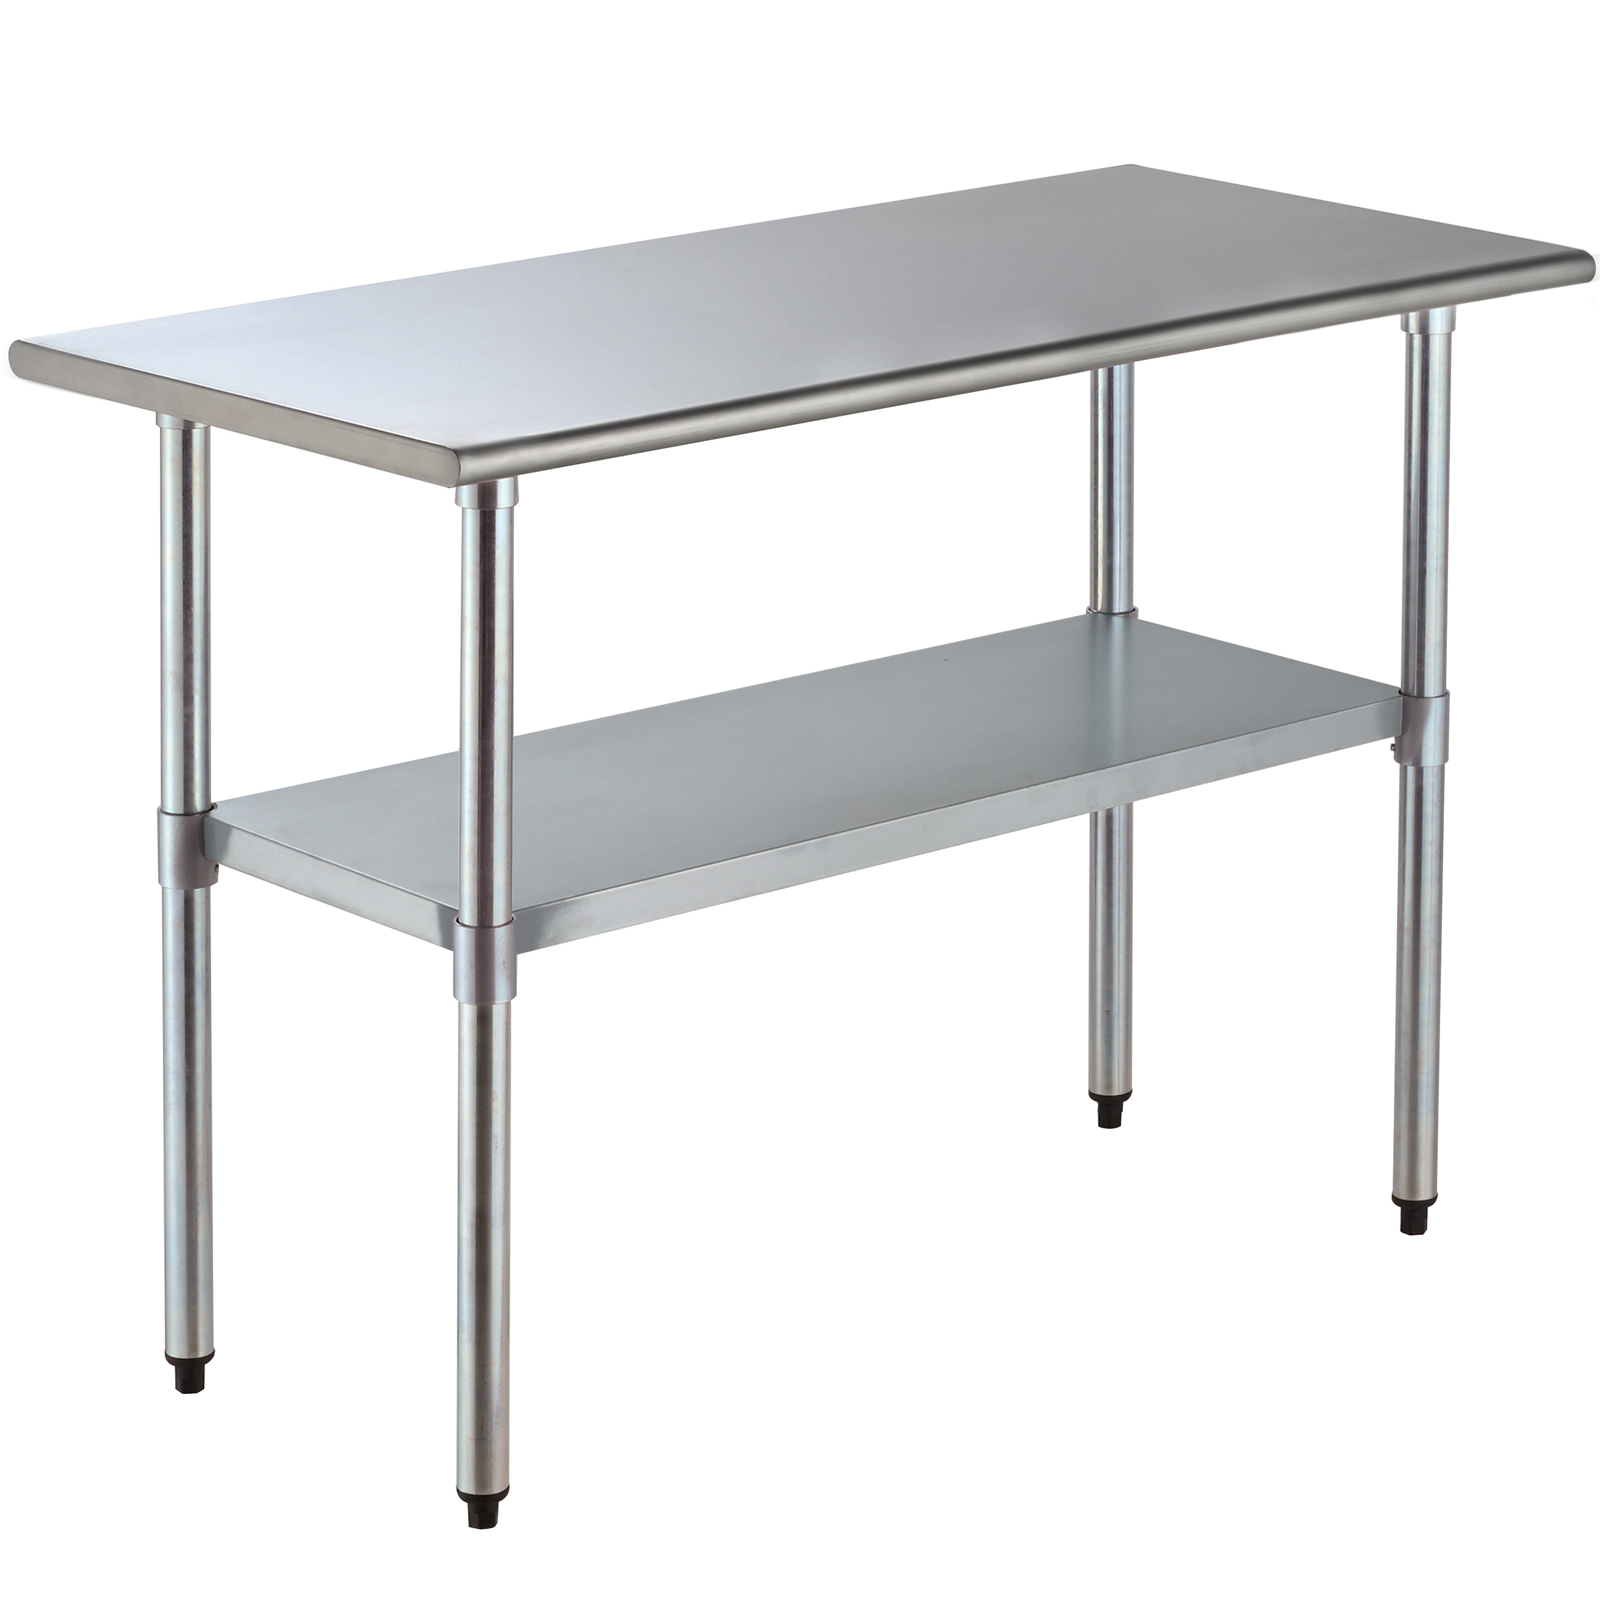 2FT×4FT Commercial Stainless Steel Kitchen Work Prep Table Without  Backsplash